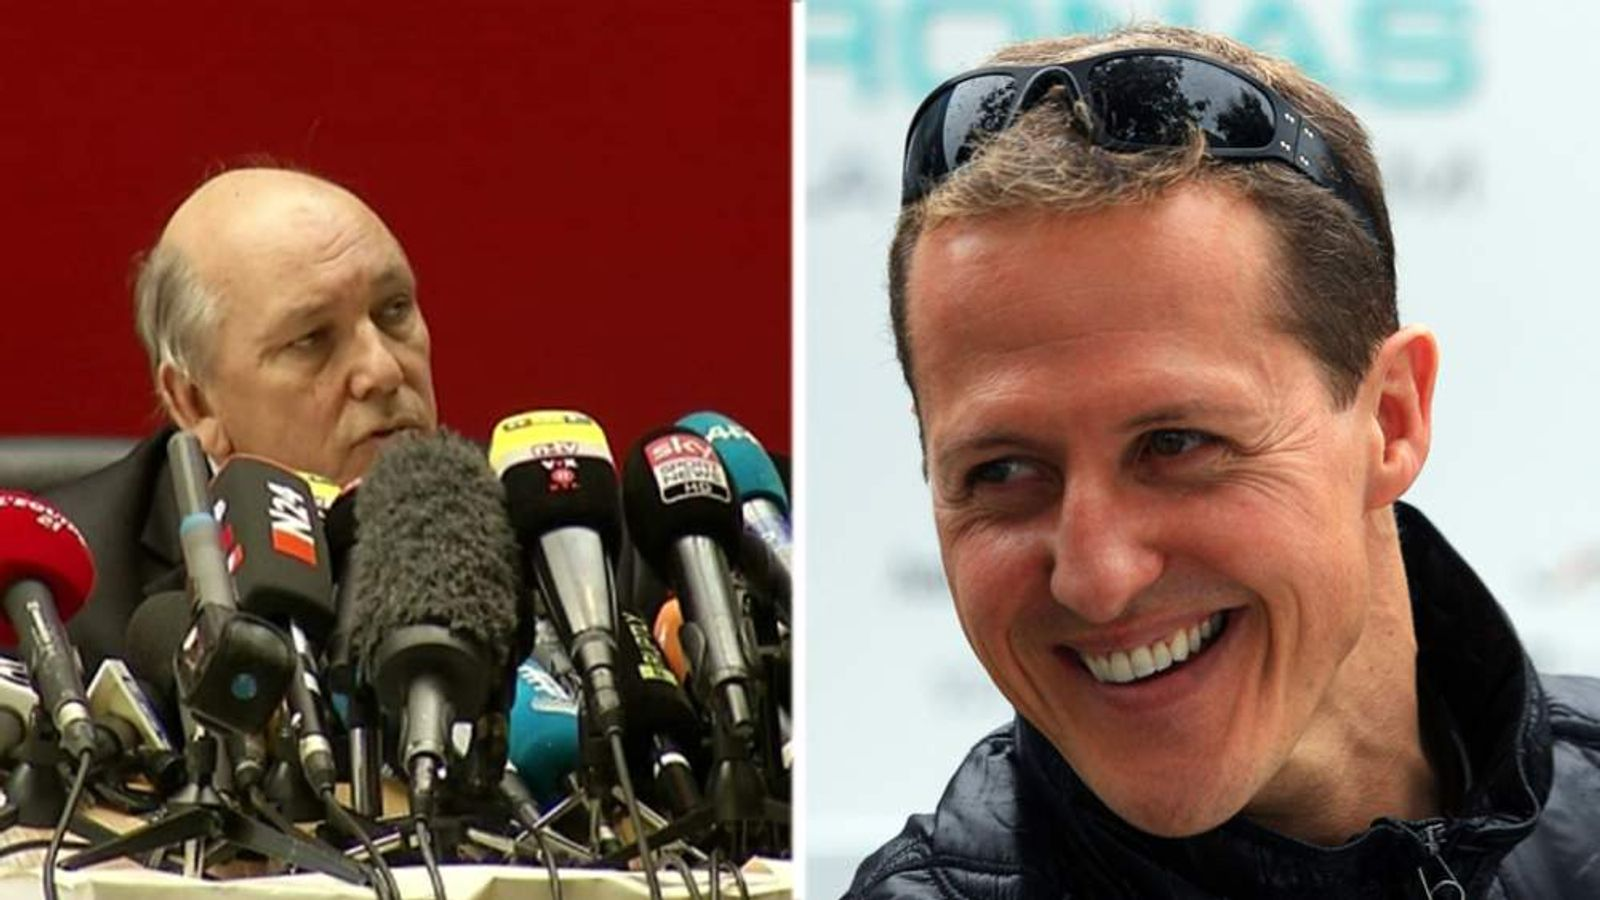 Patrick Quincy and Michael Schumacher